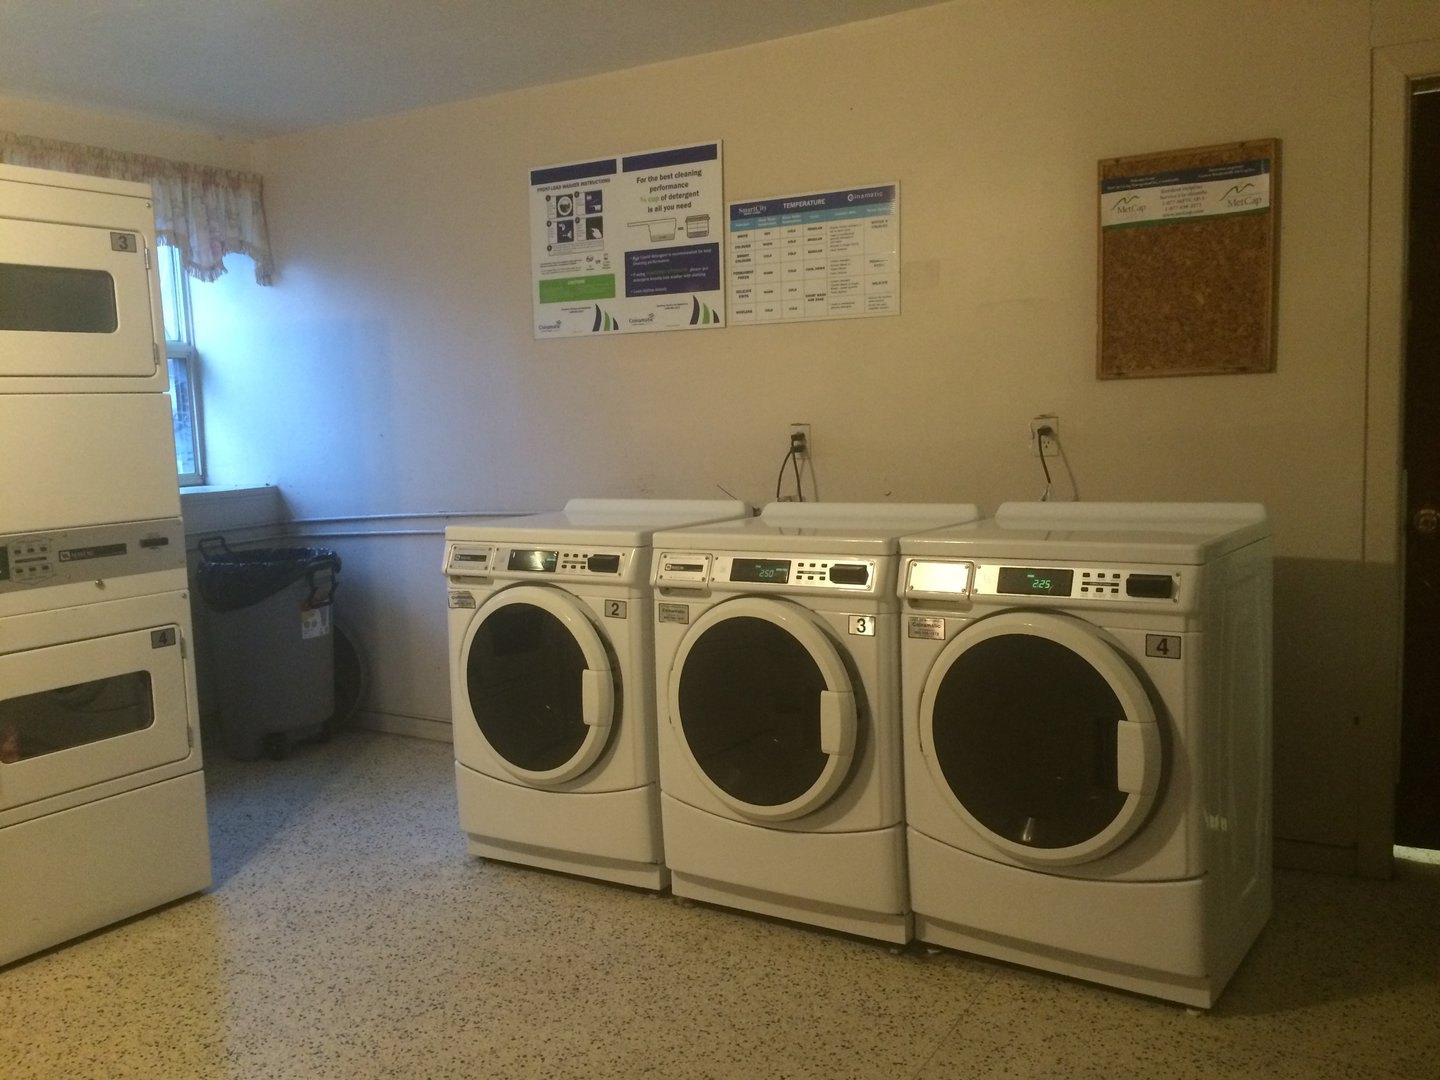 Apartment for rent at 141 Main St S, Brampton, ON. This is the laundry room with carpet and natural light.